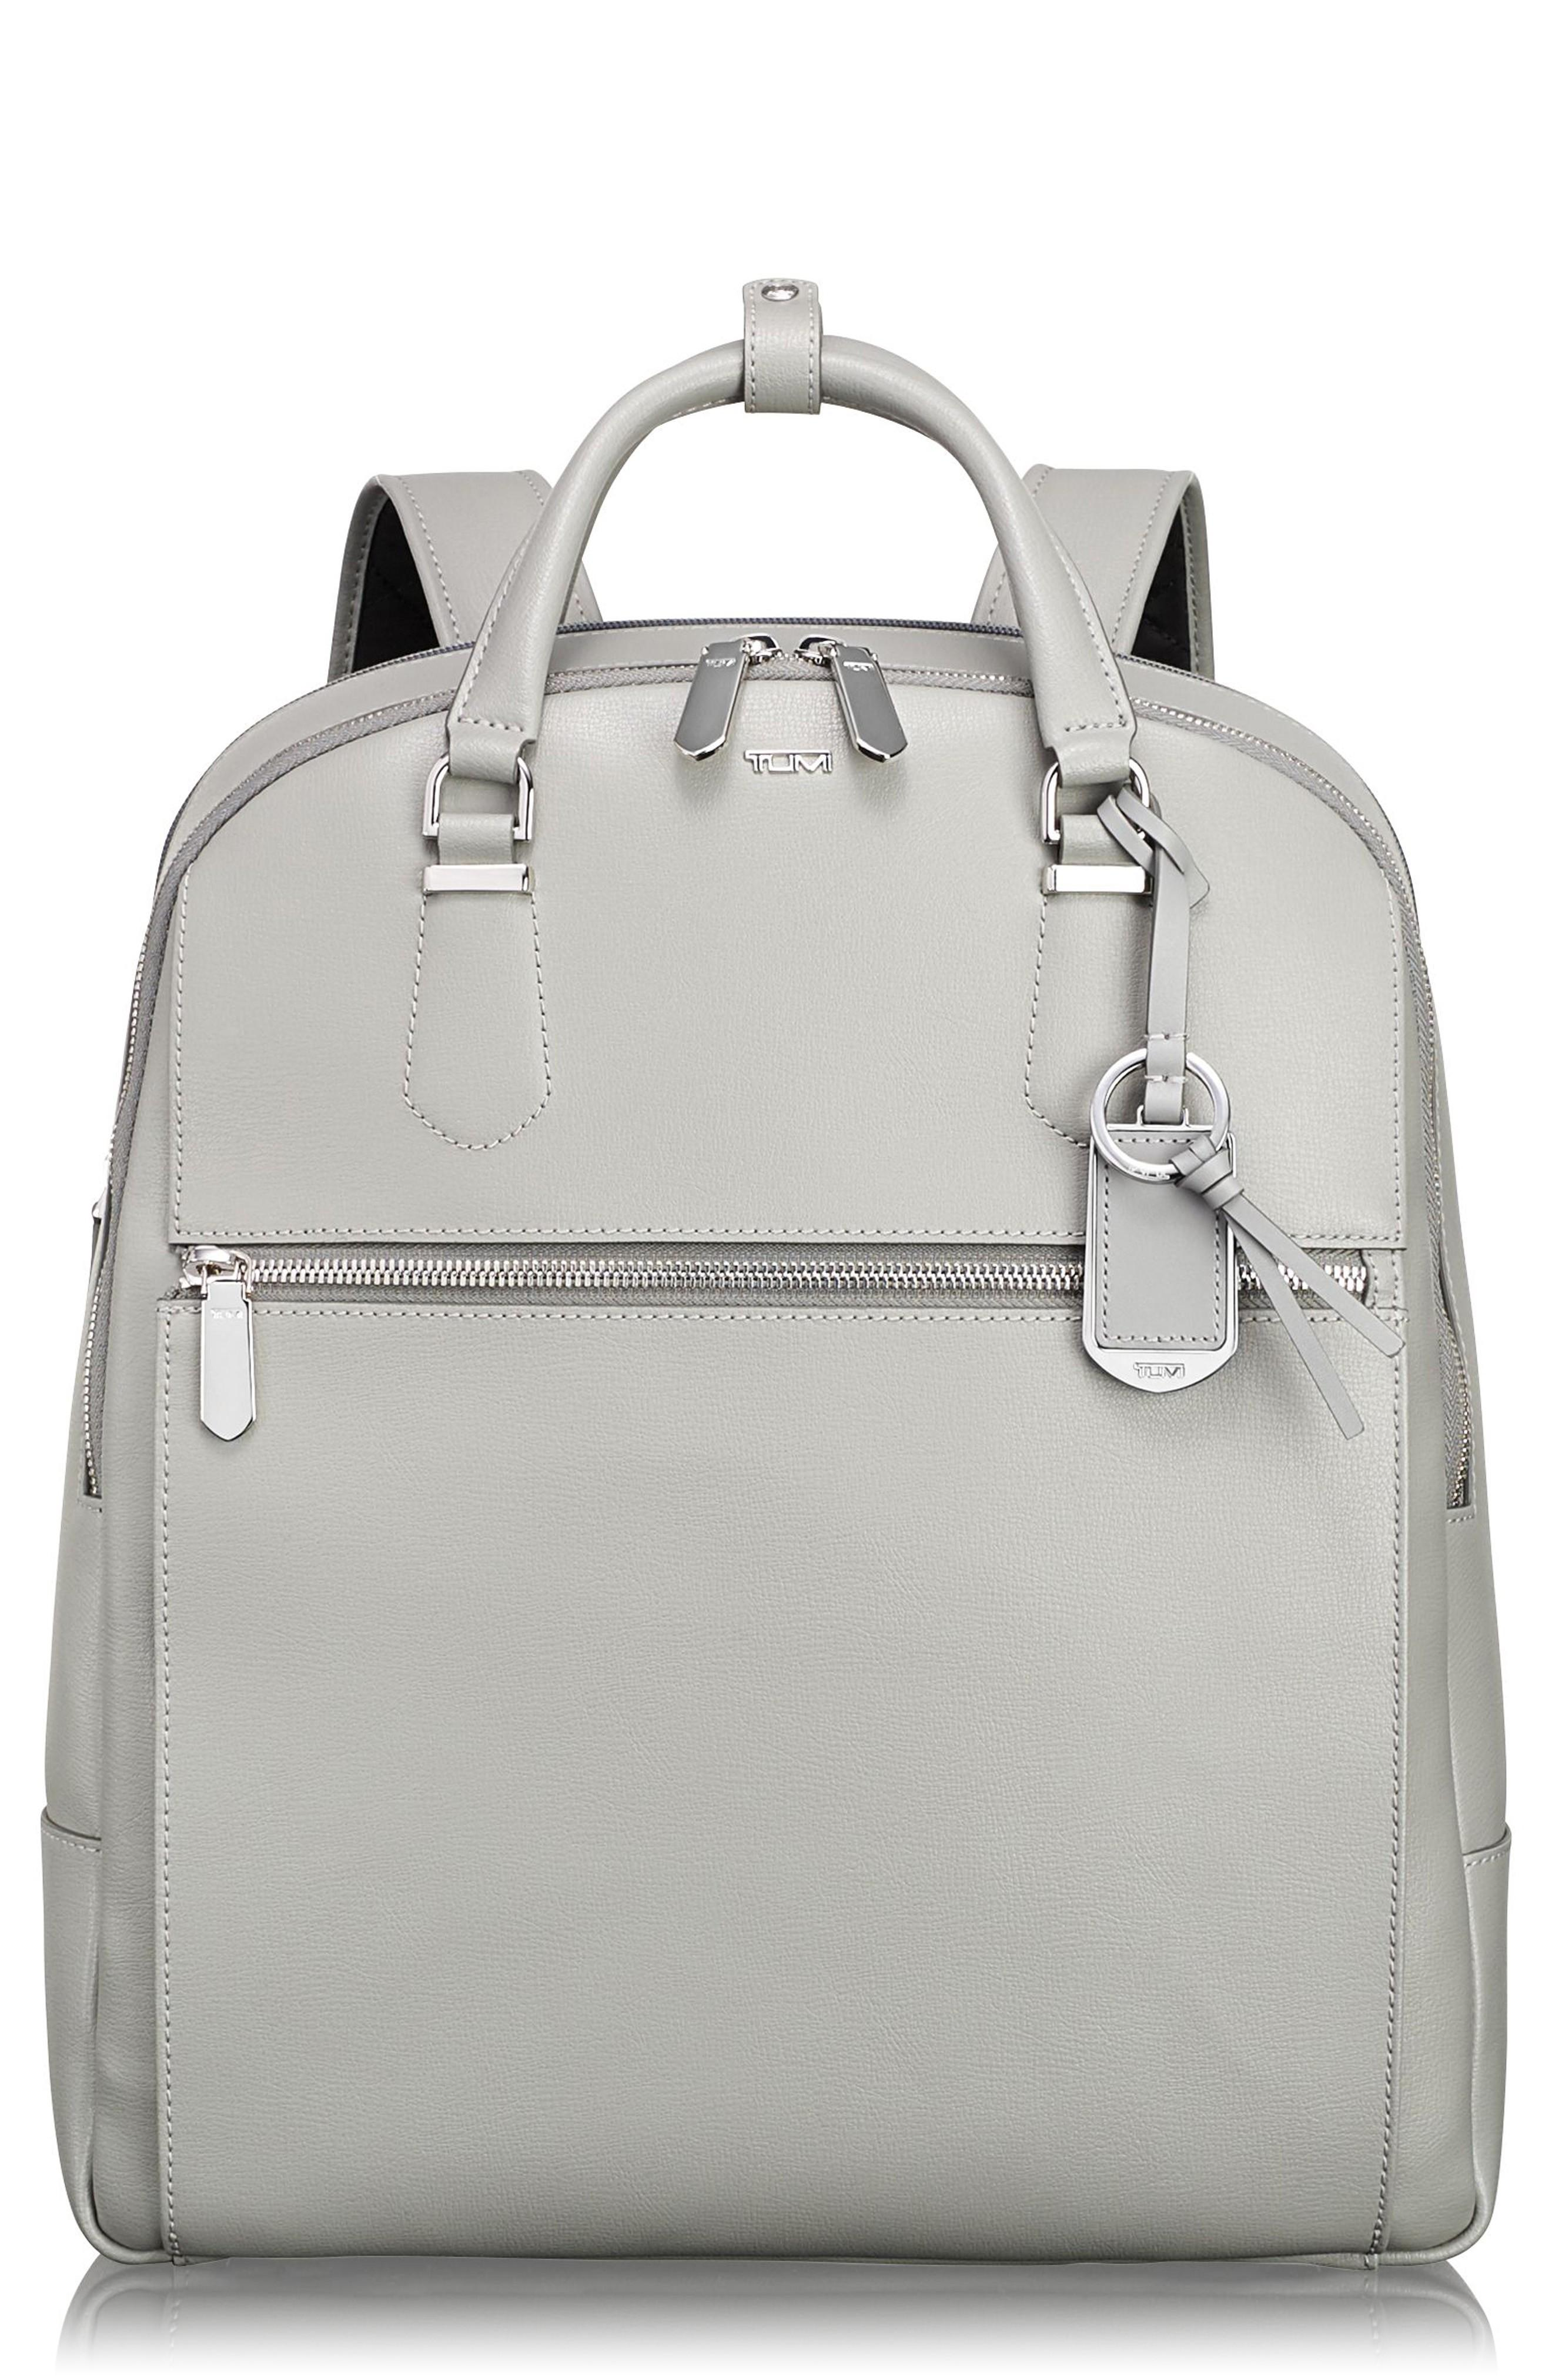 Tumi Stanton Orion Leather Backpack - Grey In Light Grey